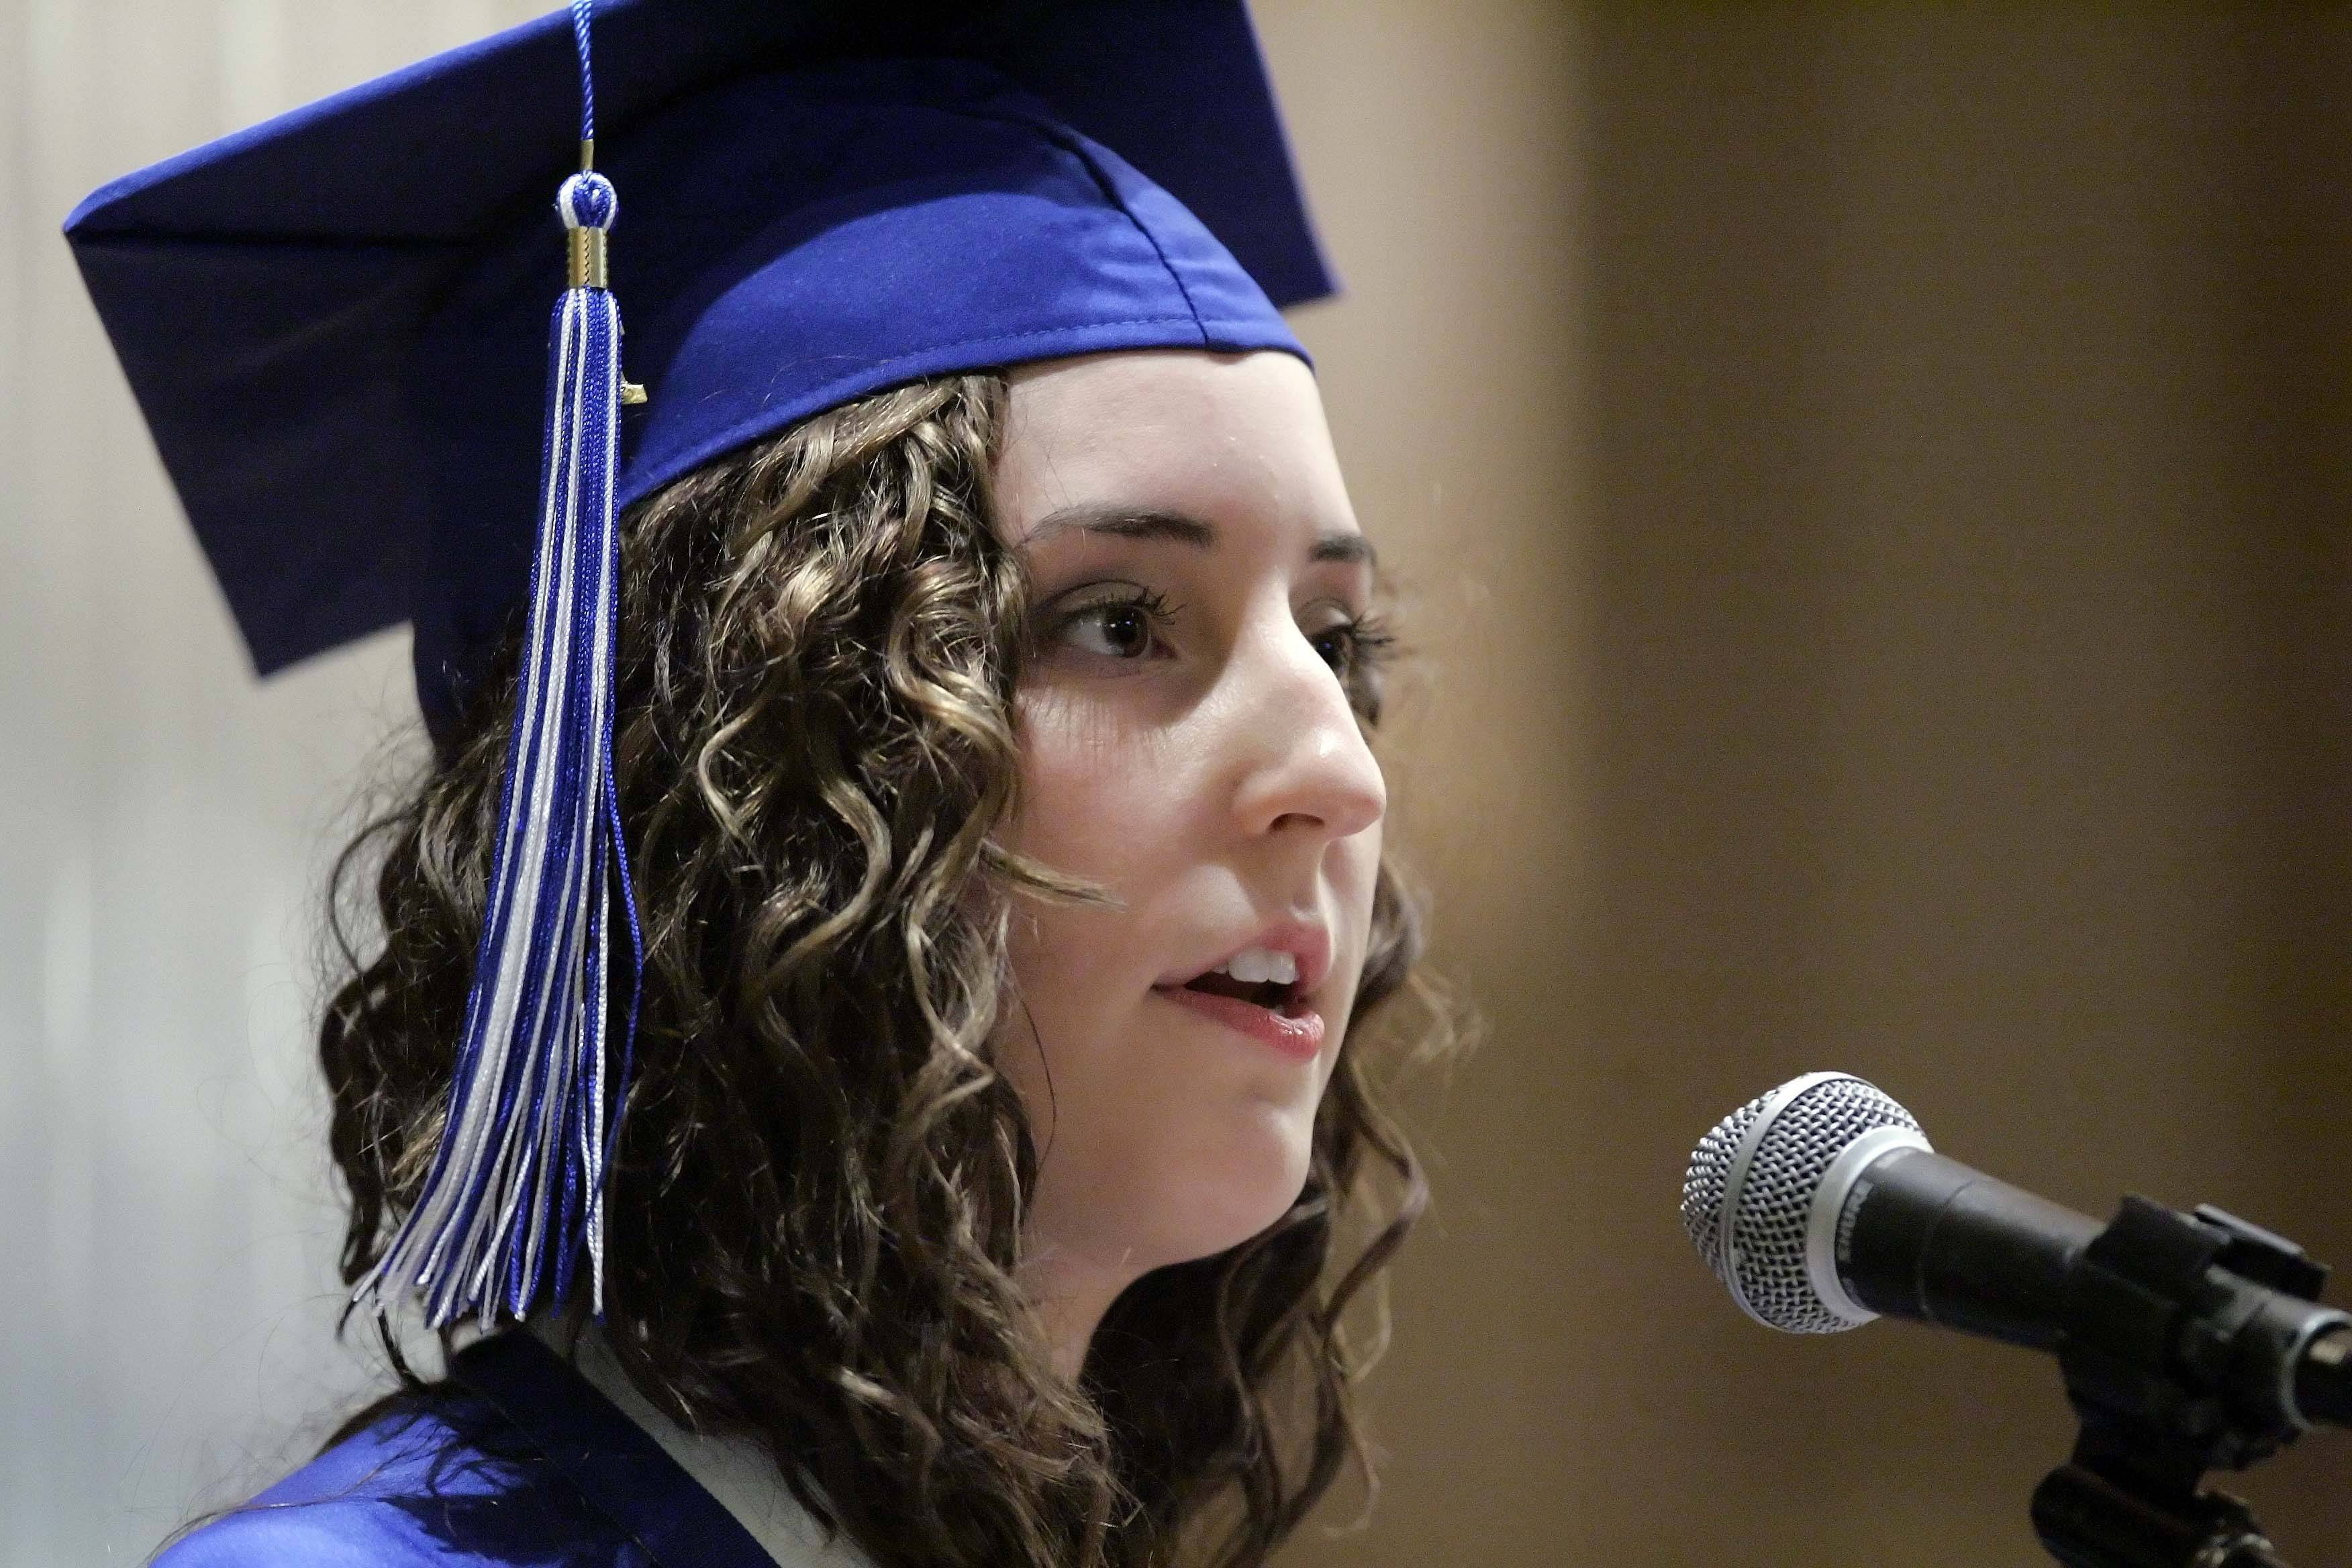 Sarah McIntire gives the senior address during the Westminster Christian High School graduation Friday, May 27, 2011 at the Elgin school.